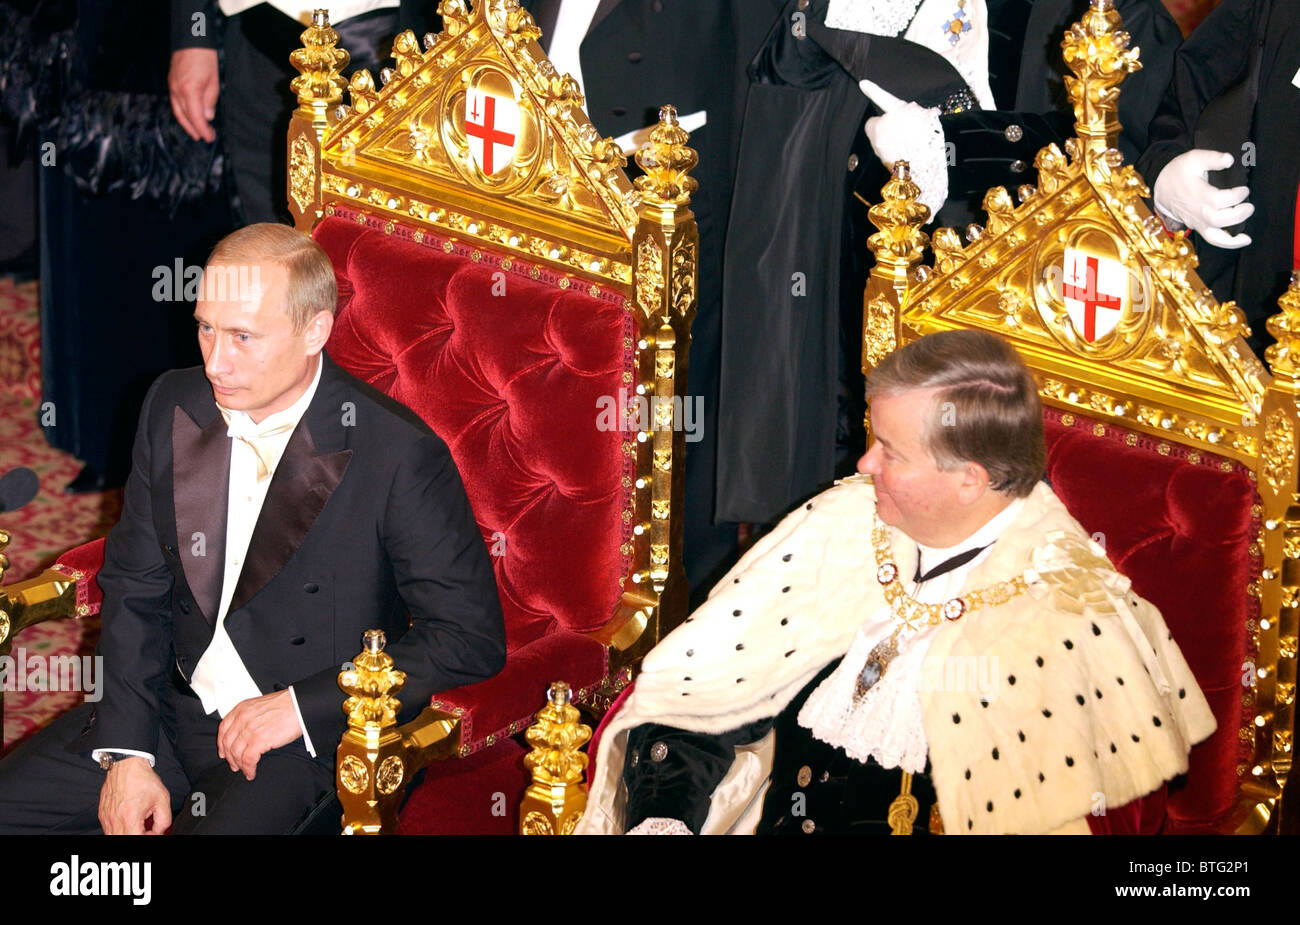 President Putin of the Russian Federation with Lord Mayor of London at banquet at Guildhall, during official visit - Stock Image